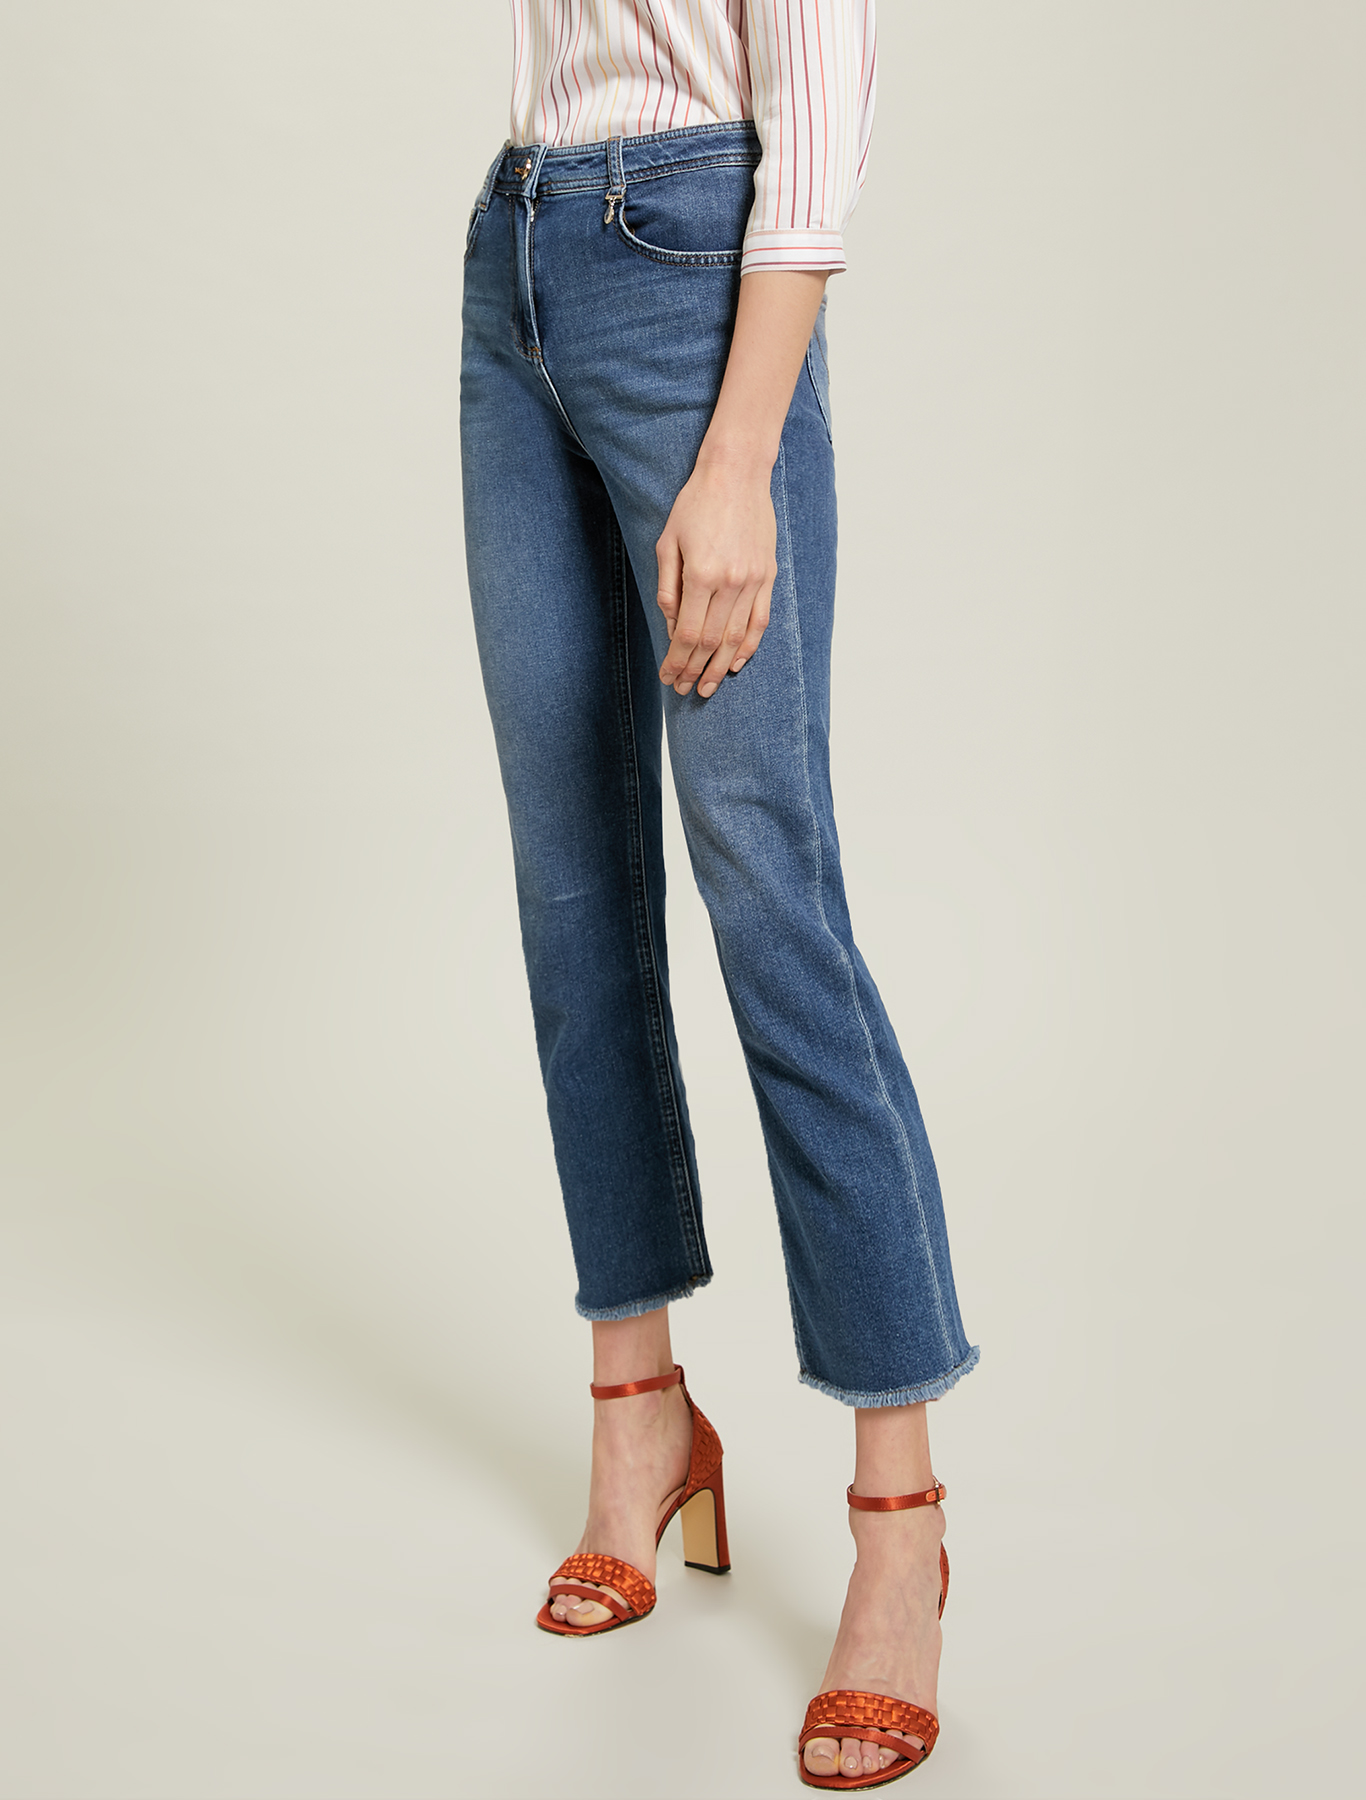 Jeans with fringed hem - midnight blue - pennyblack